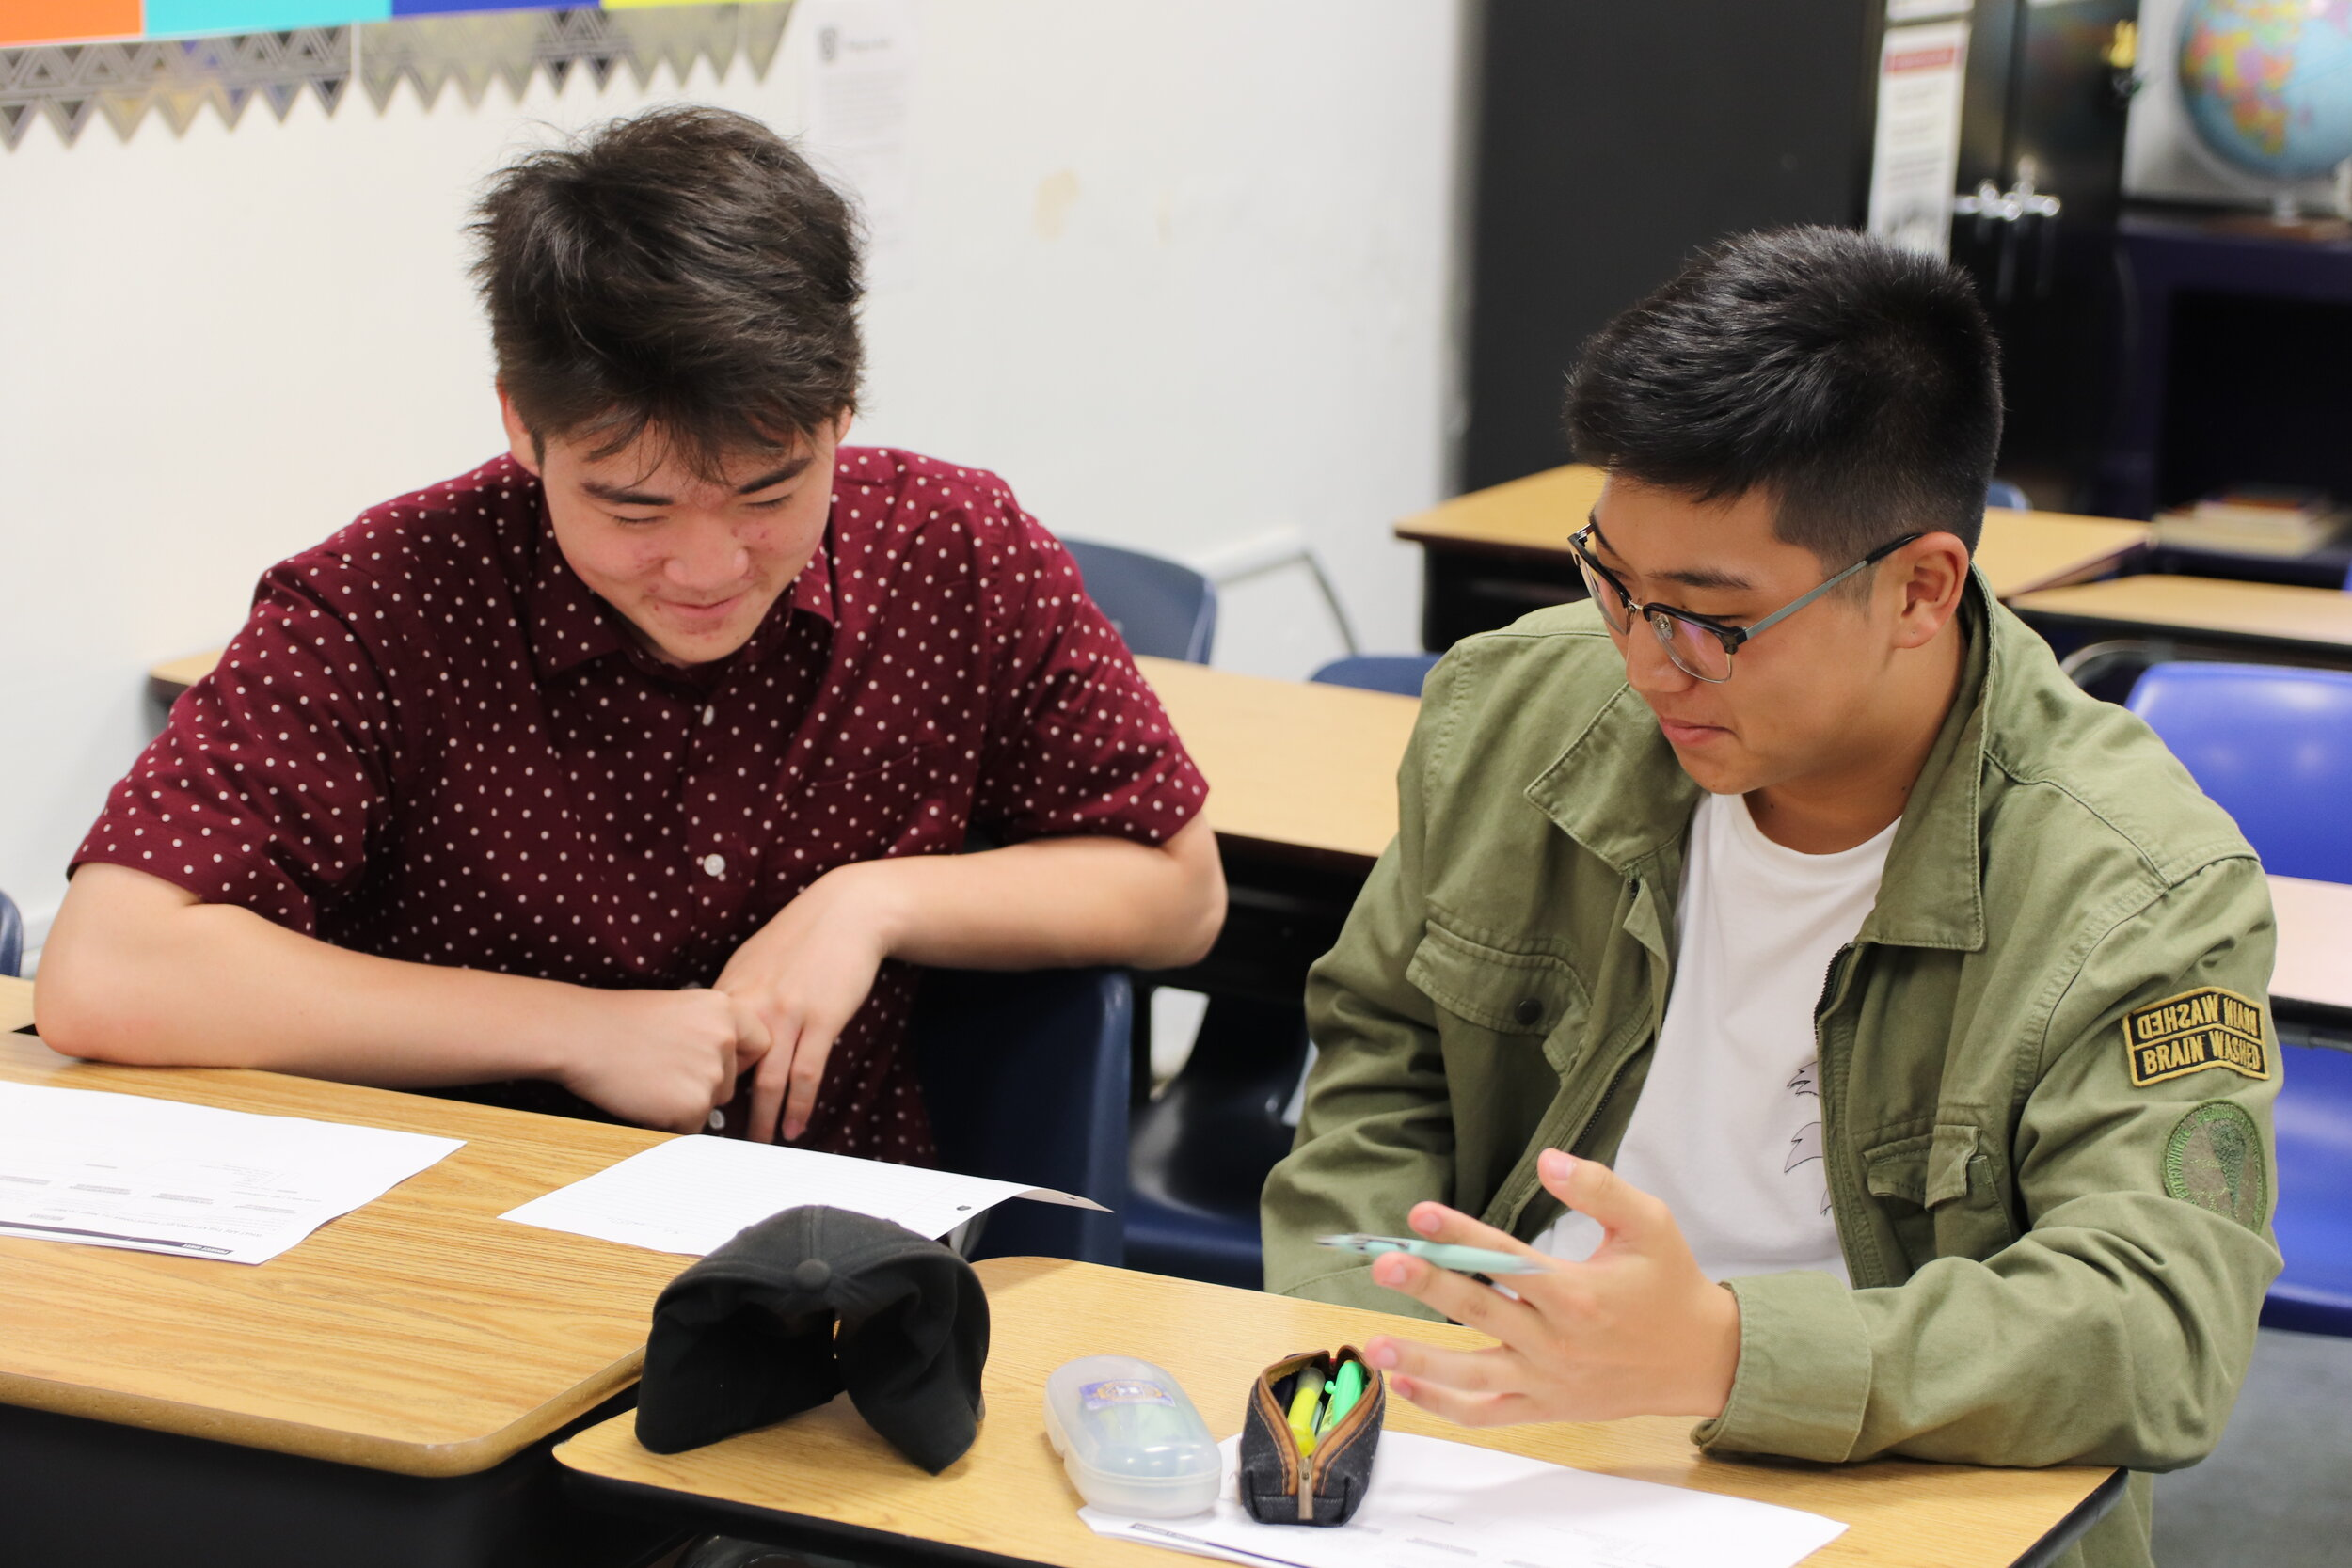 High School (9-12) - NCA's High School is renowned for the IB Diploma Program and outstanding college entrance results.